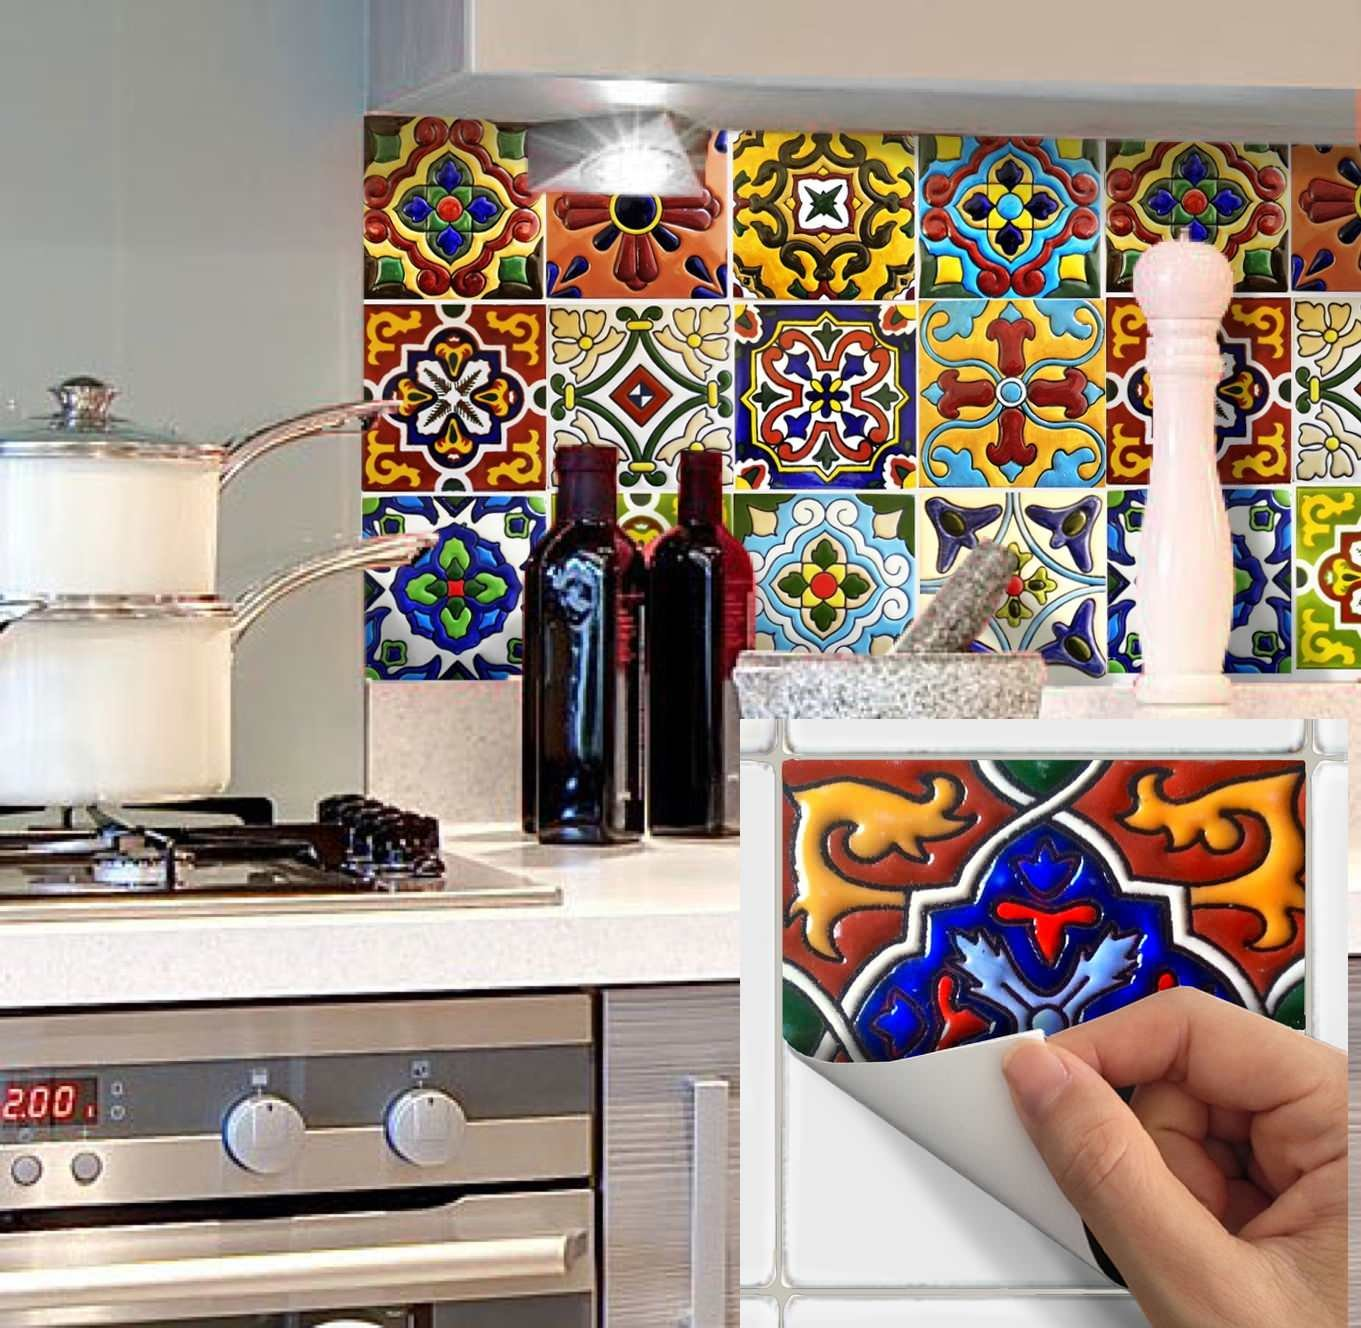 SnazzyDecal Tile Stickers Mexican Spanish 40pc 4-1/4in Peel and Stick for Kitchen and Bath Tr001-4Q by SnazzyDecal (Image #3)